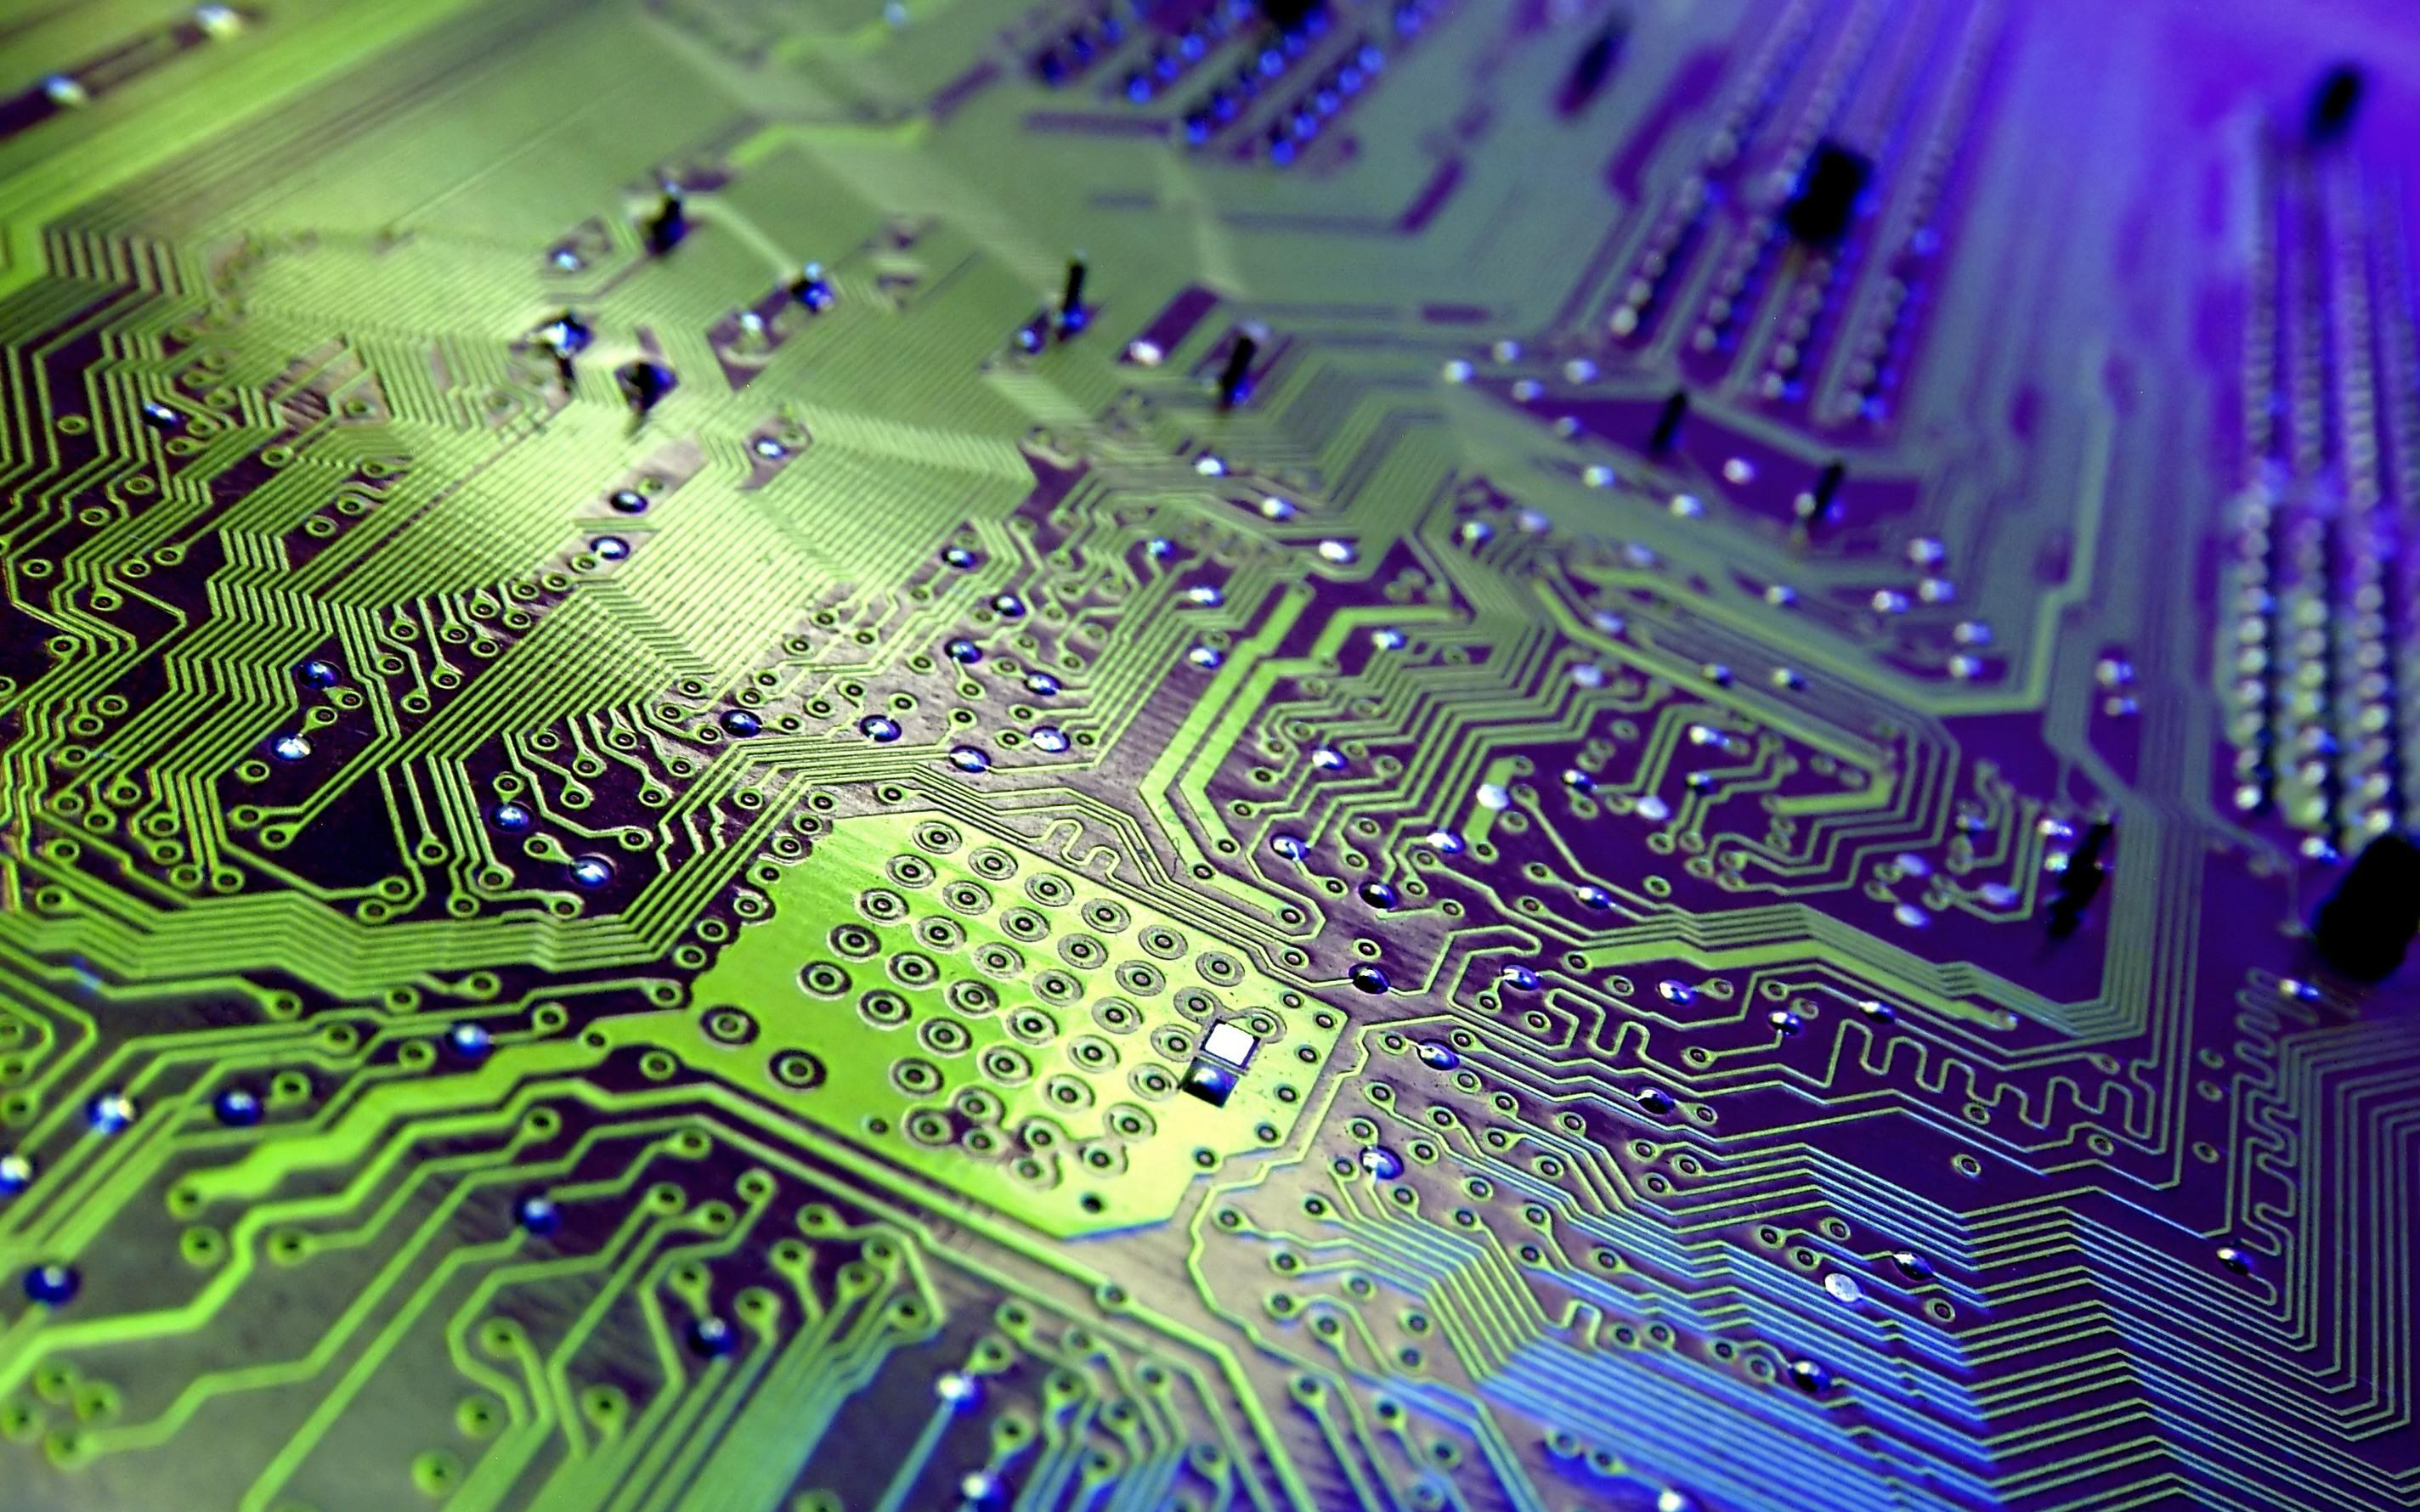 Computer Chips Wallpaper Images Pictures   Becuo 2848x1780